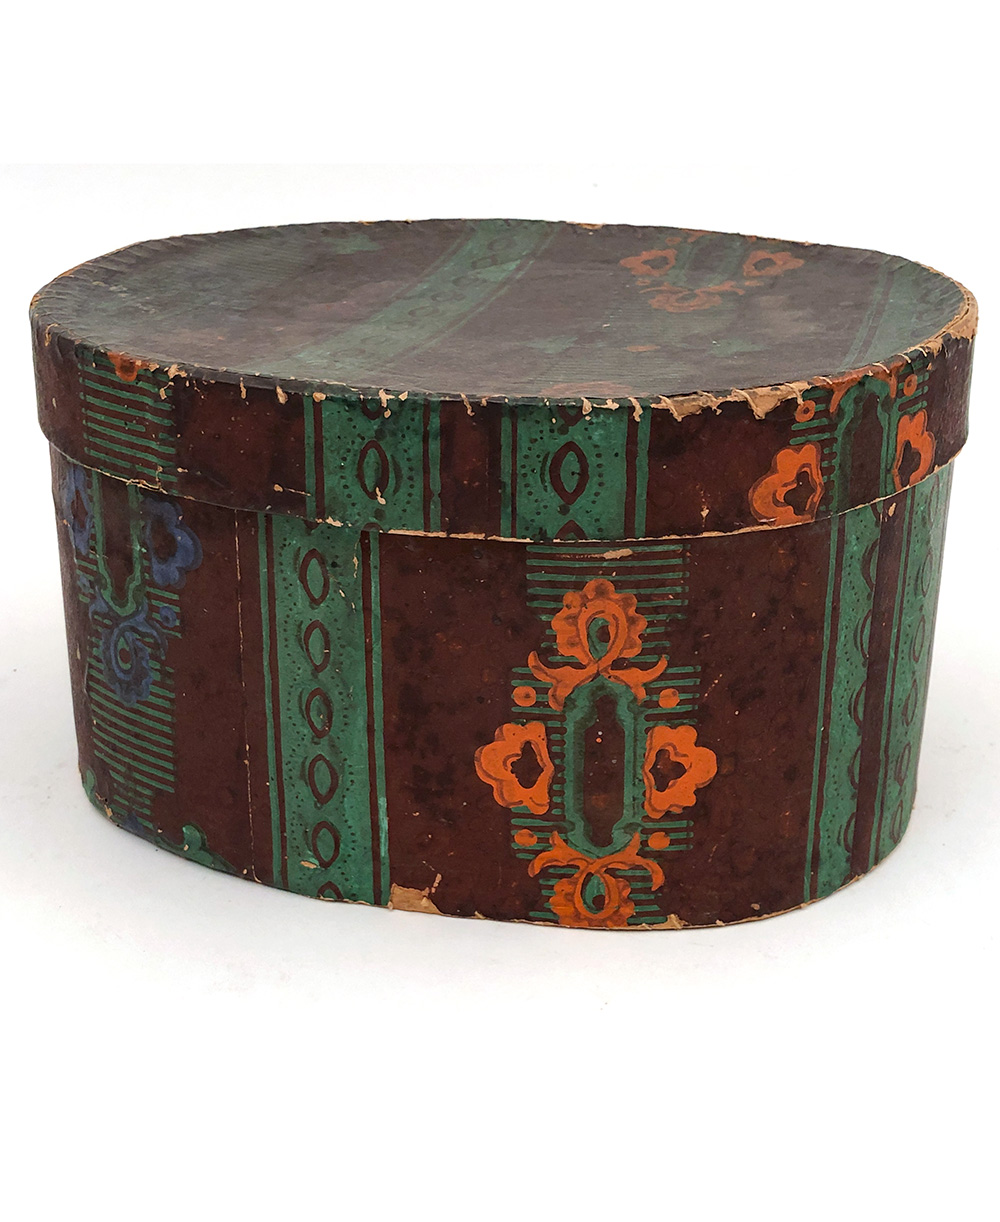 Early American Antique Folk Art Oval Wallpaper Box For Sale